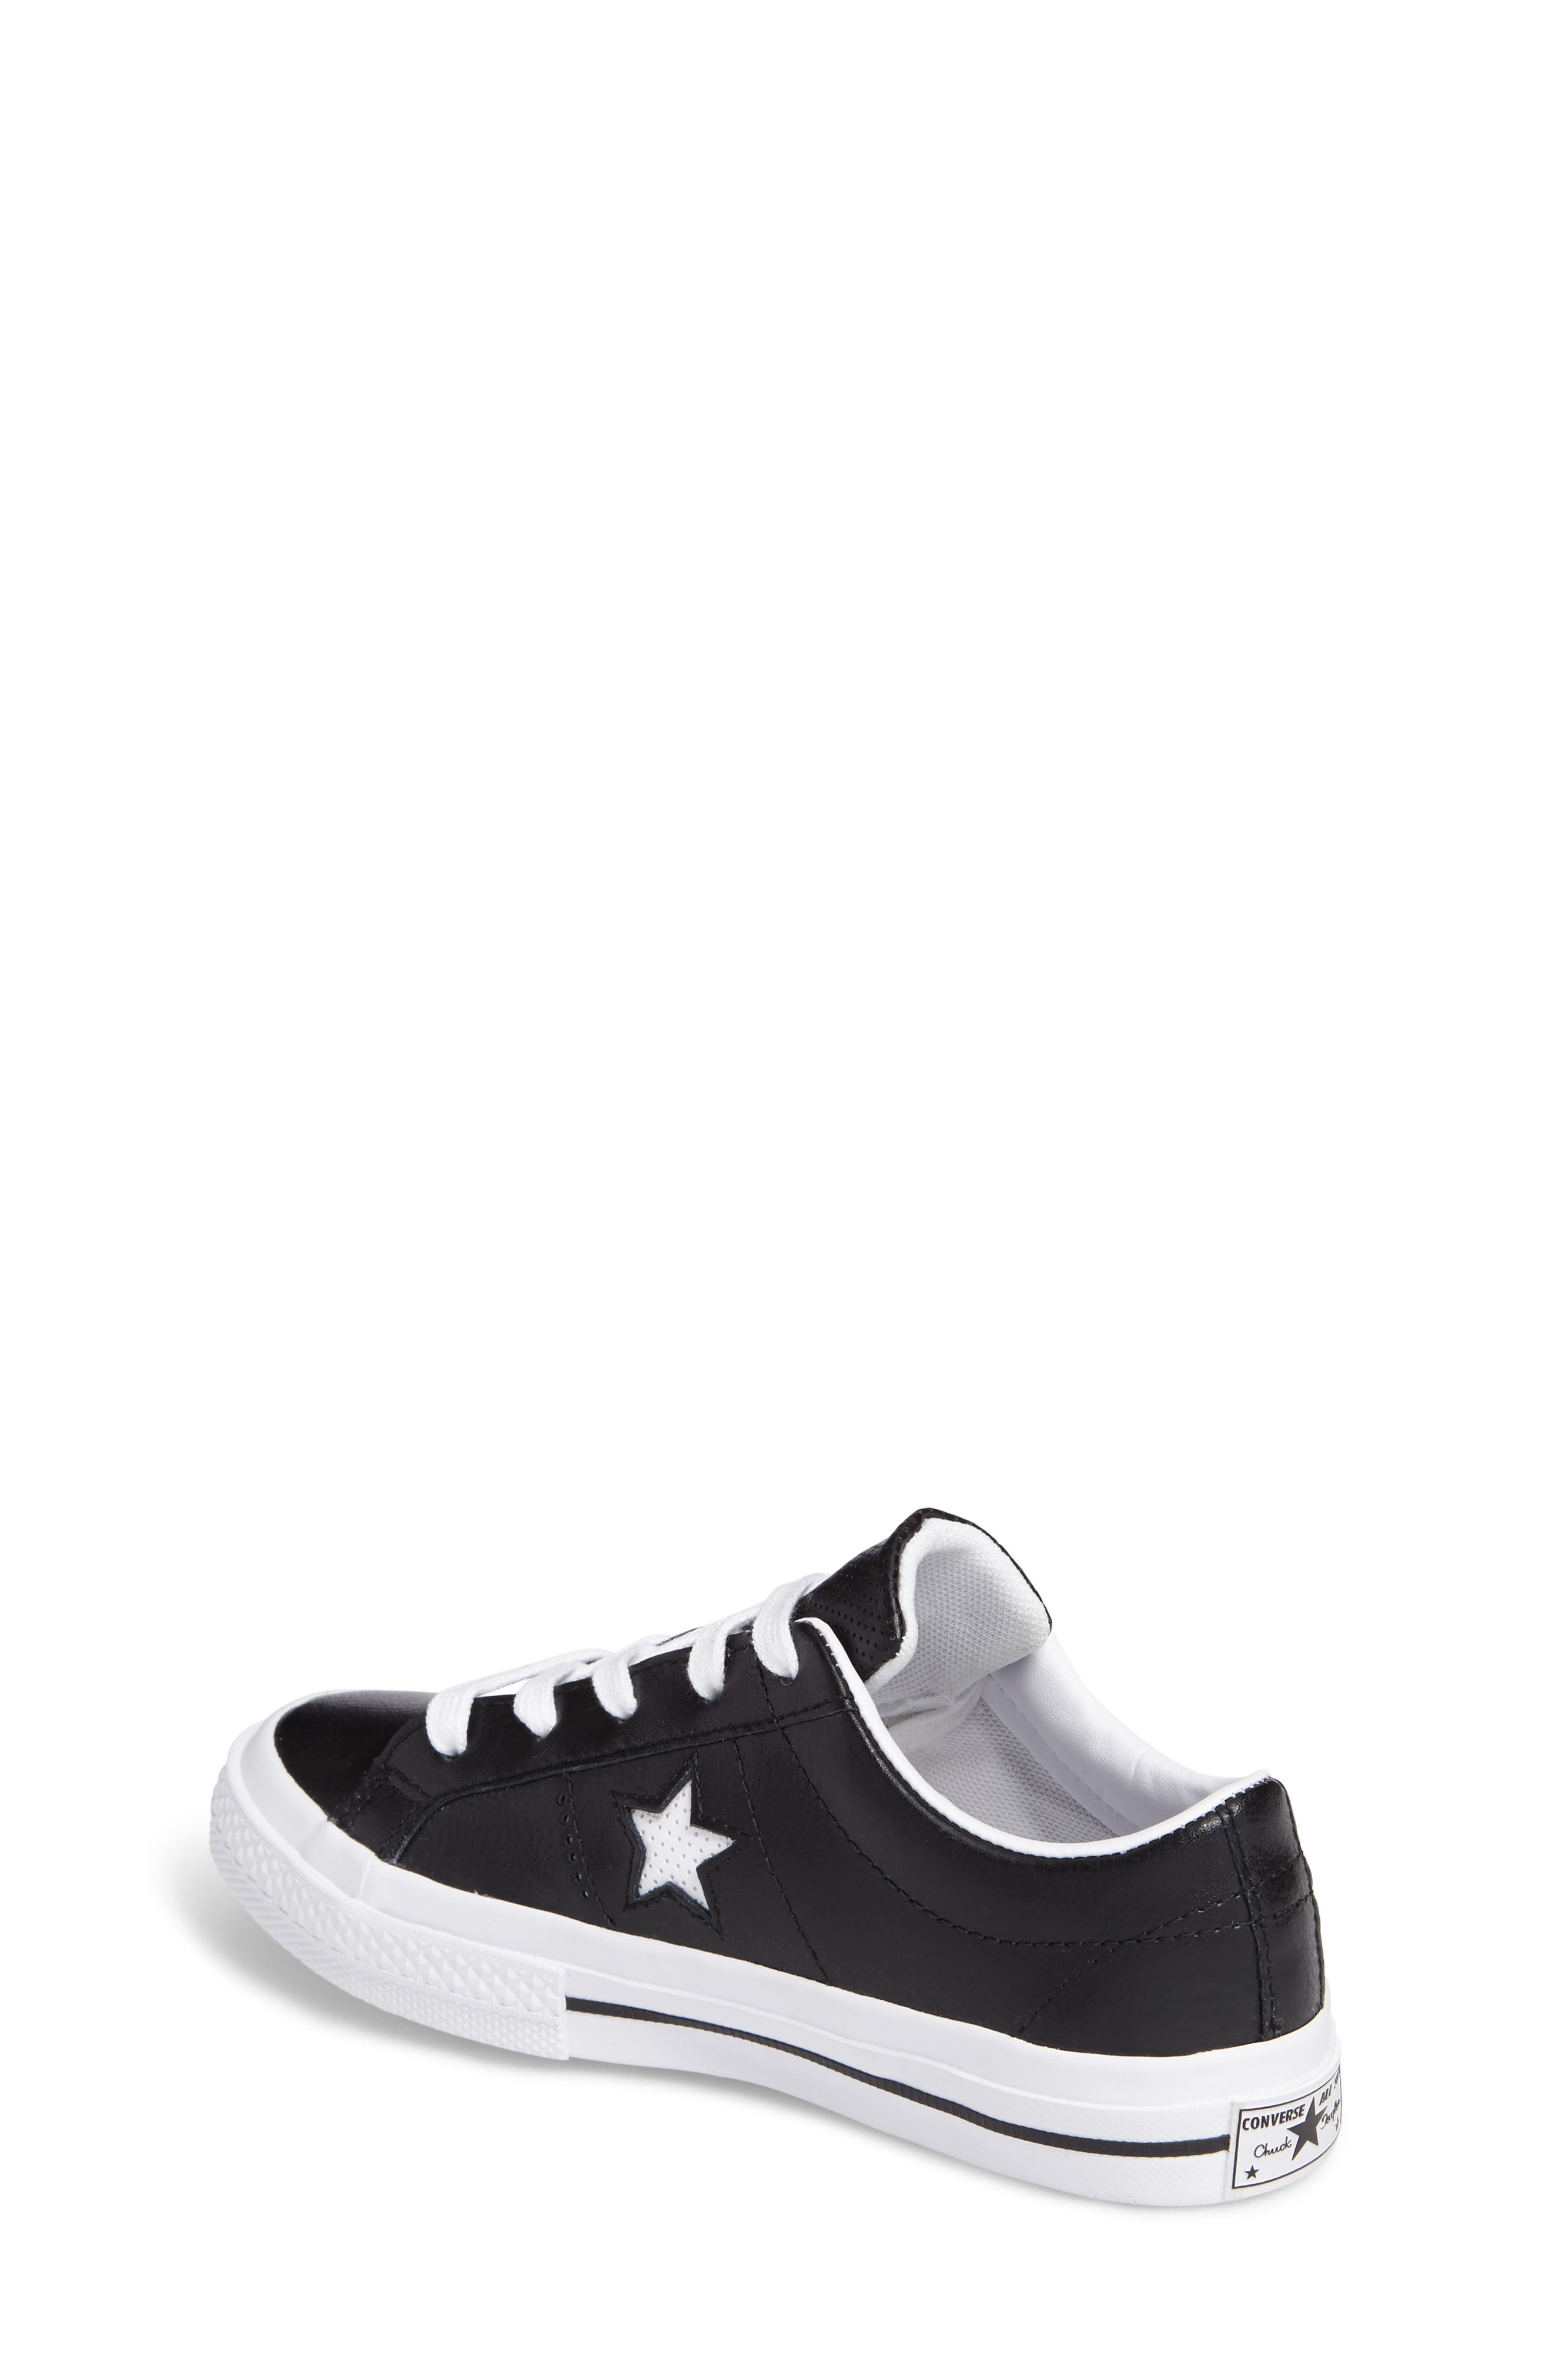 Chuck Taylor<sup>®</sup> All Star<sup>®</sup> One Star Sneaker,                             Alternate thumbnail 2, color,                             Black Leather